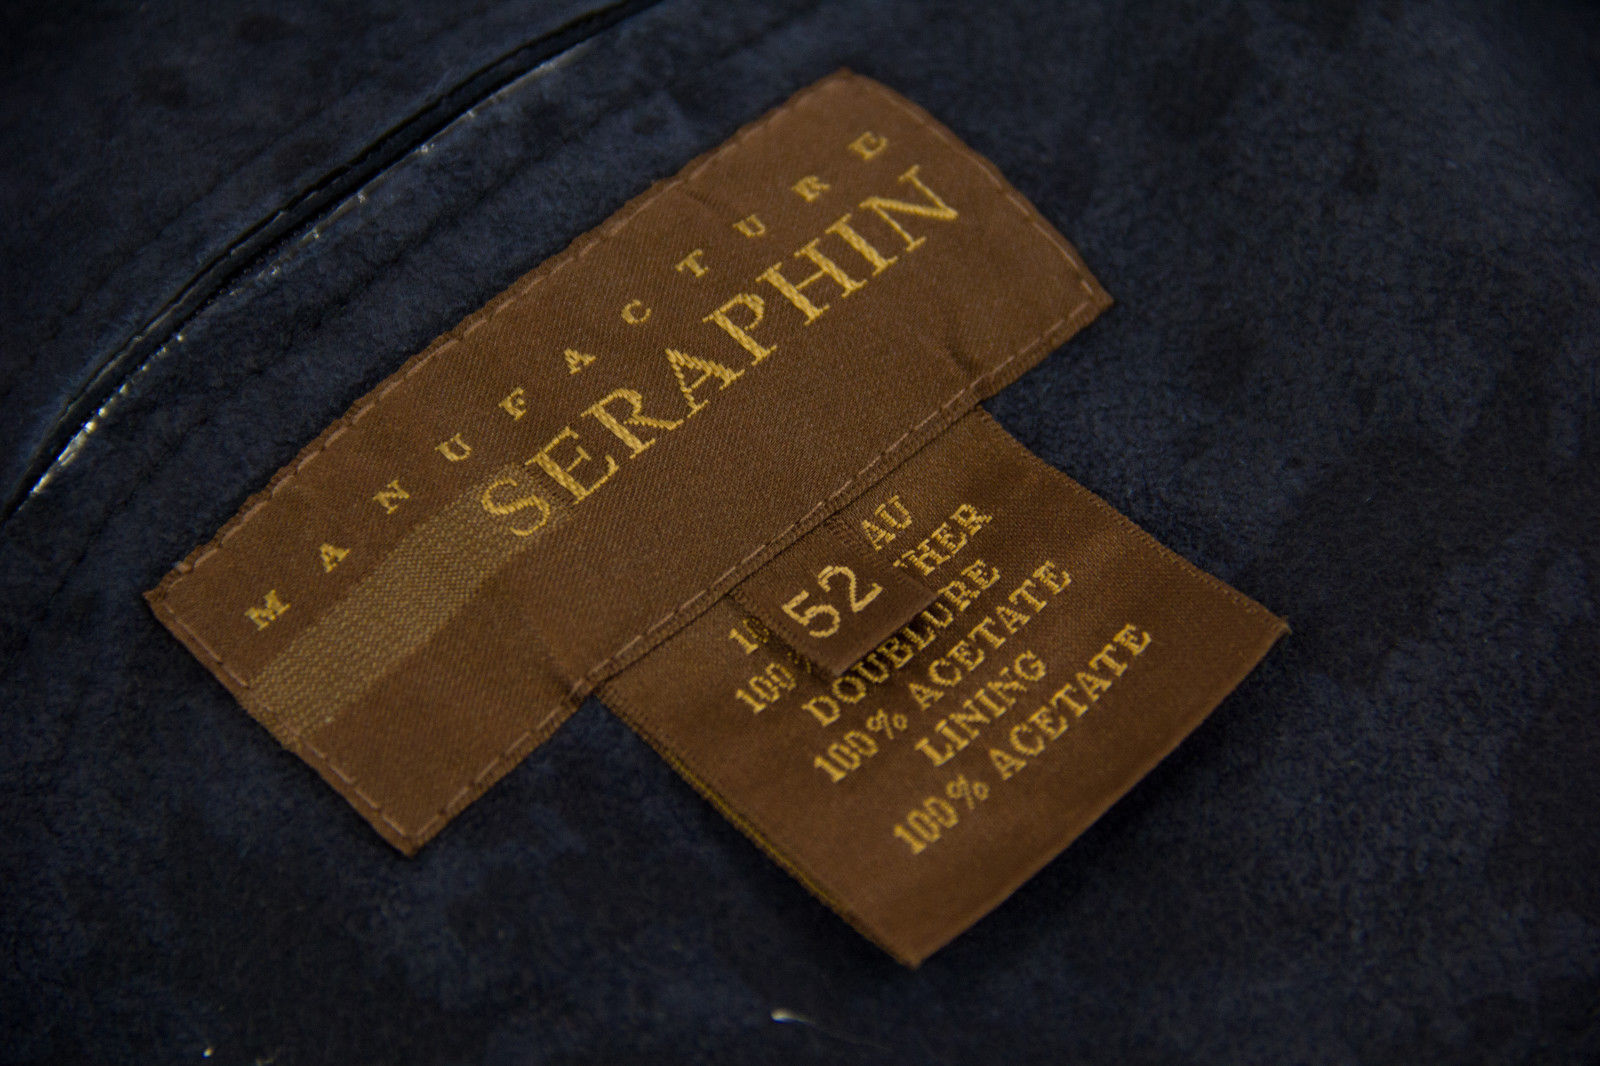 SERAPHIN Manufacture Super Soft Leather Blazer Jacket/Sport Coat EU 52/ USA 42 - secondfirst